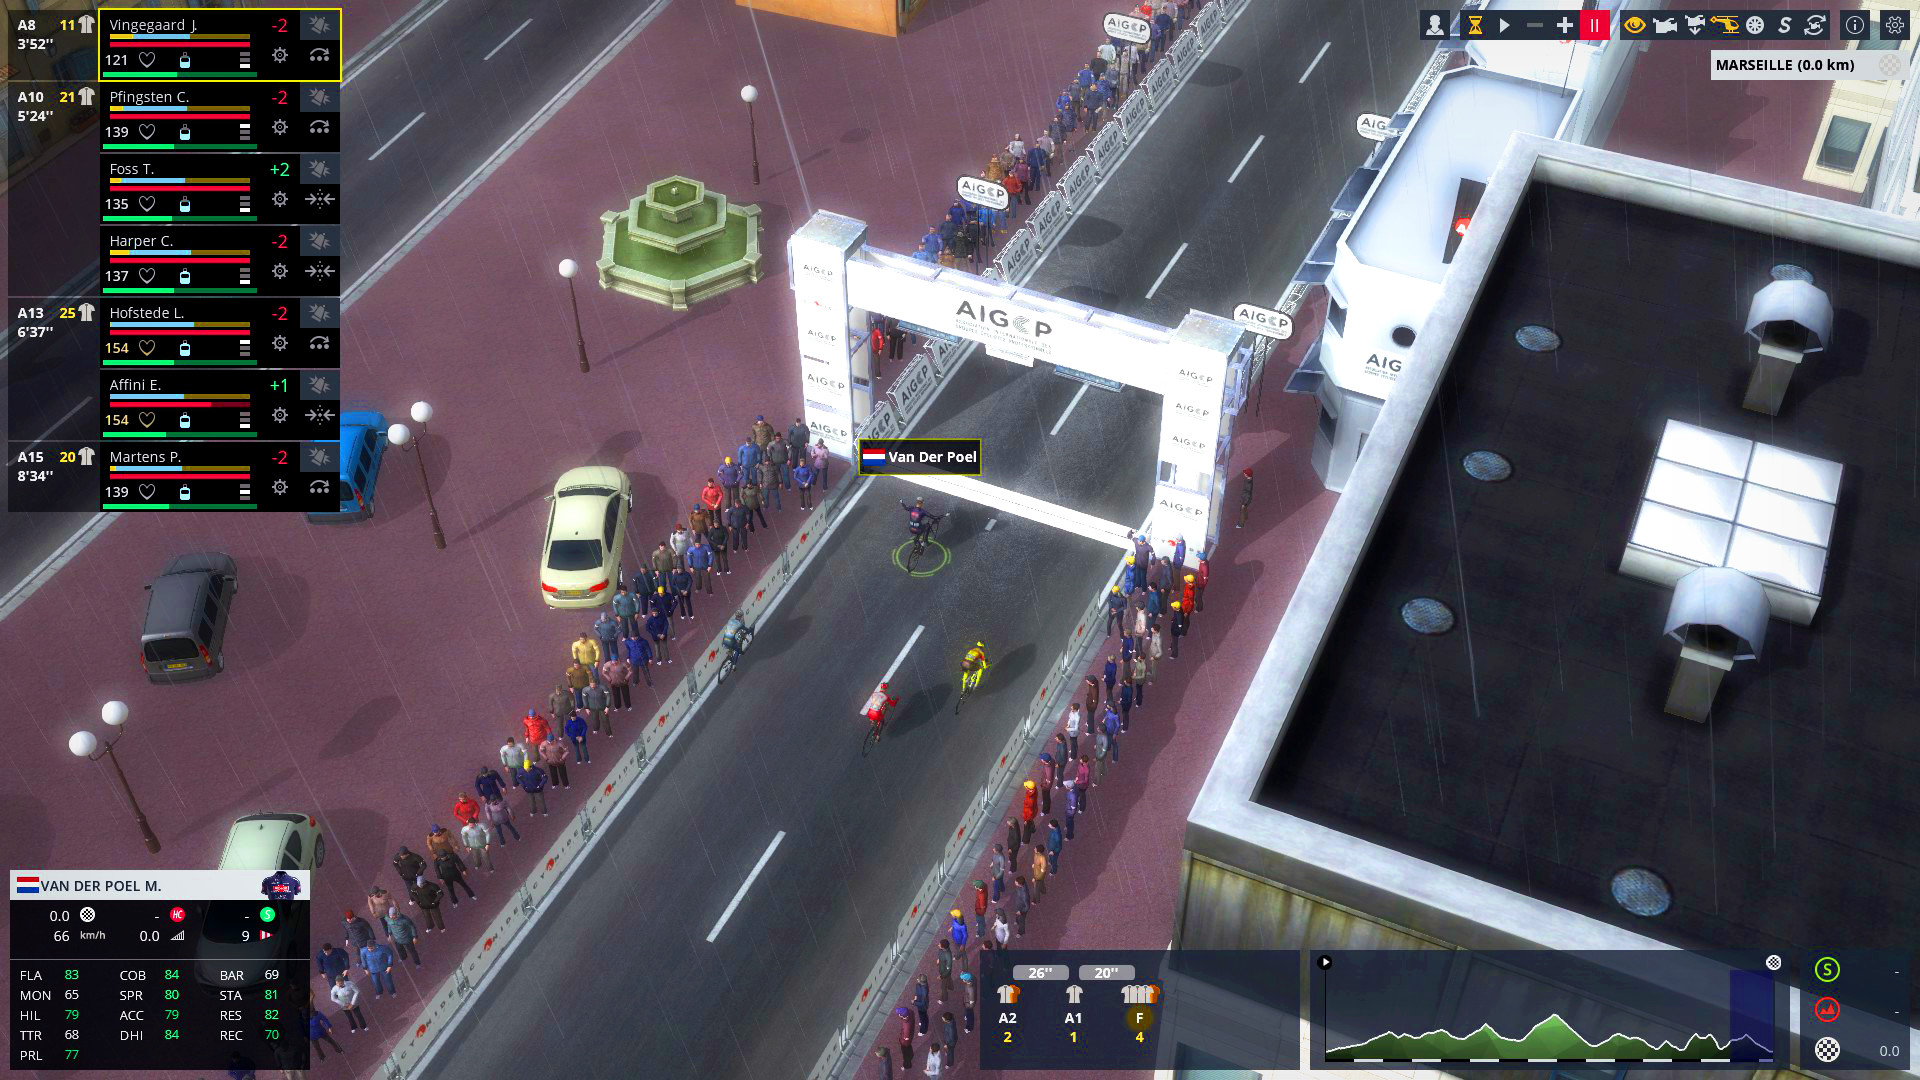 Pro Cycling Manager 2021 on Steam